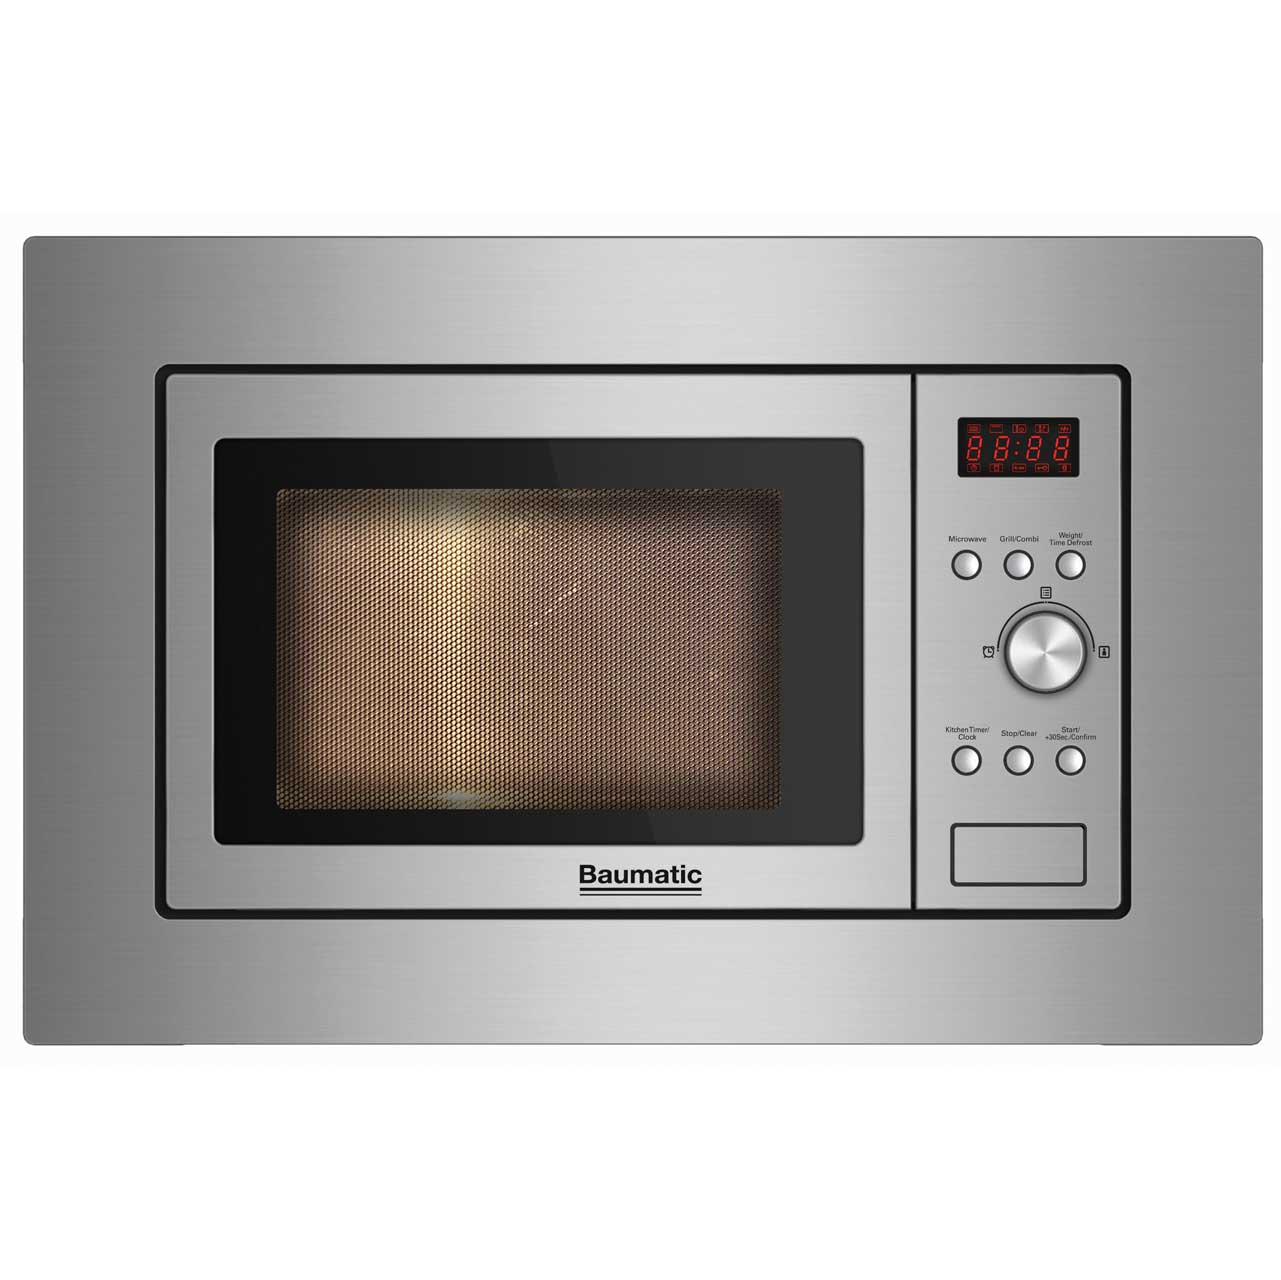 Baumatic BMIG3825 Integrated Microwave Oven in Stainless Steel